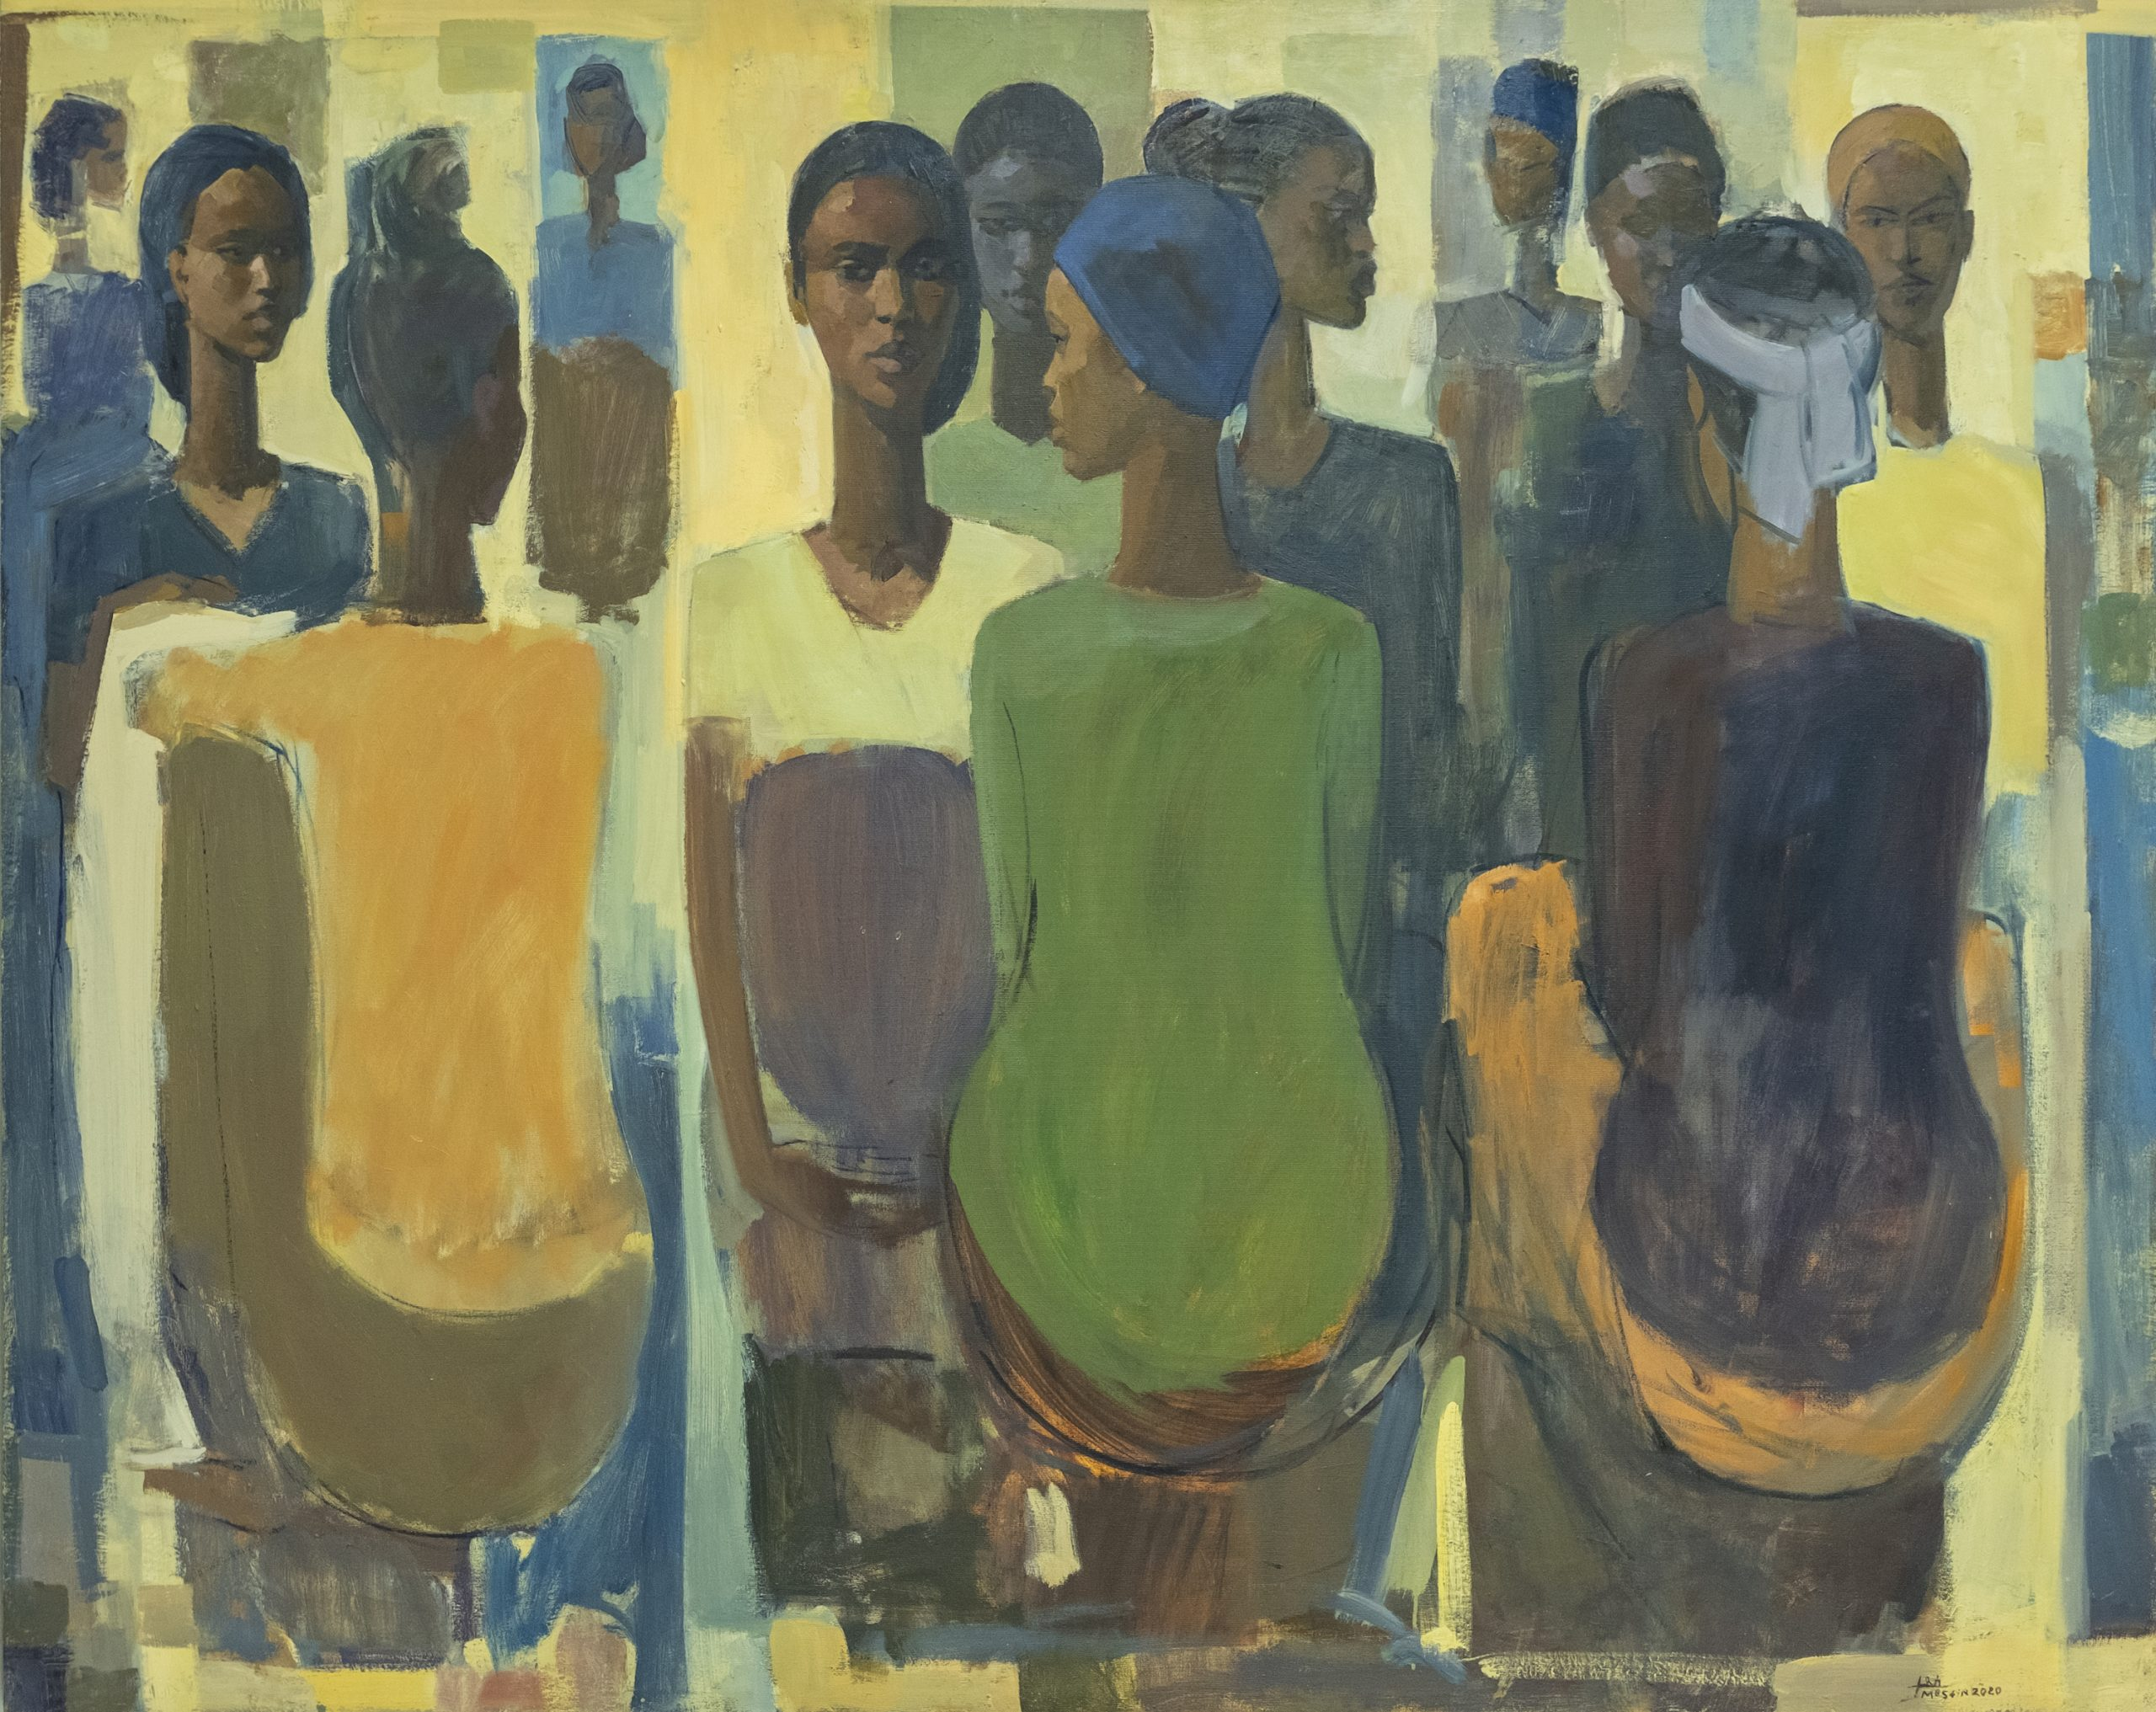 Tadesse Mesfin, Pillars of Life: Market Day IV, 2020, oil on canvas. Photo: Eyerusalem Jiregna. Courtesy Addis Fine Art